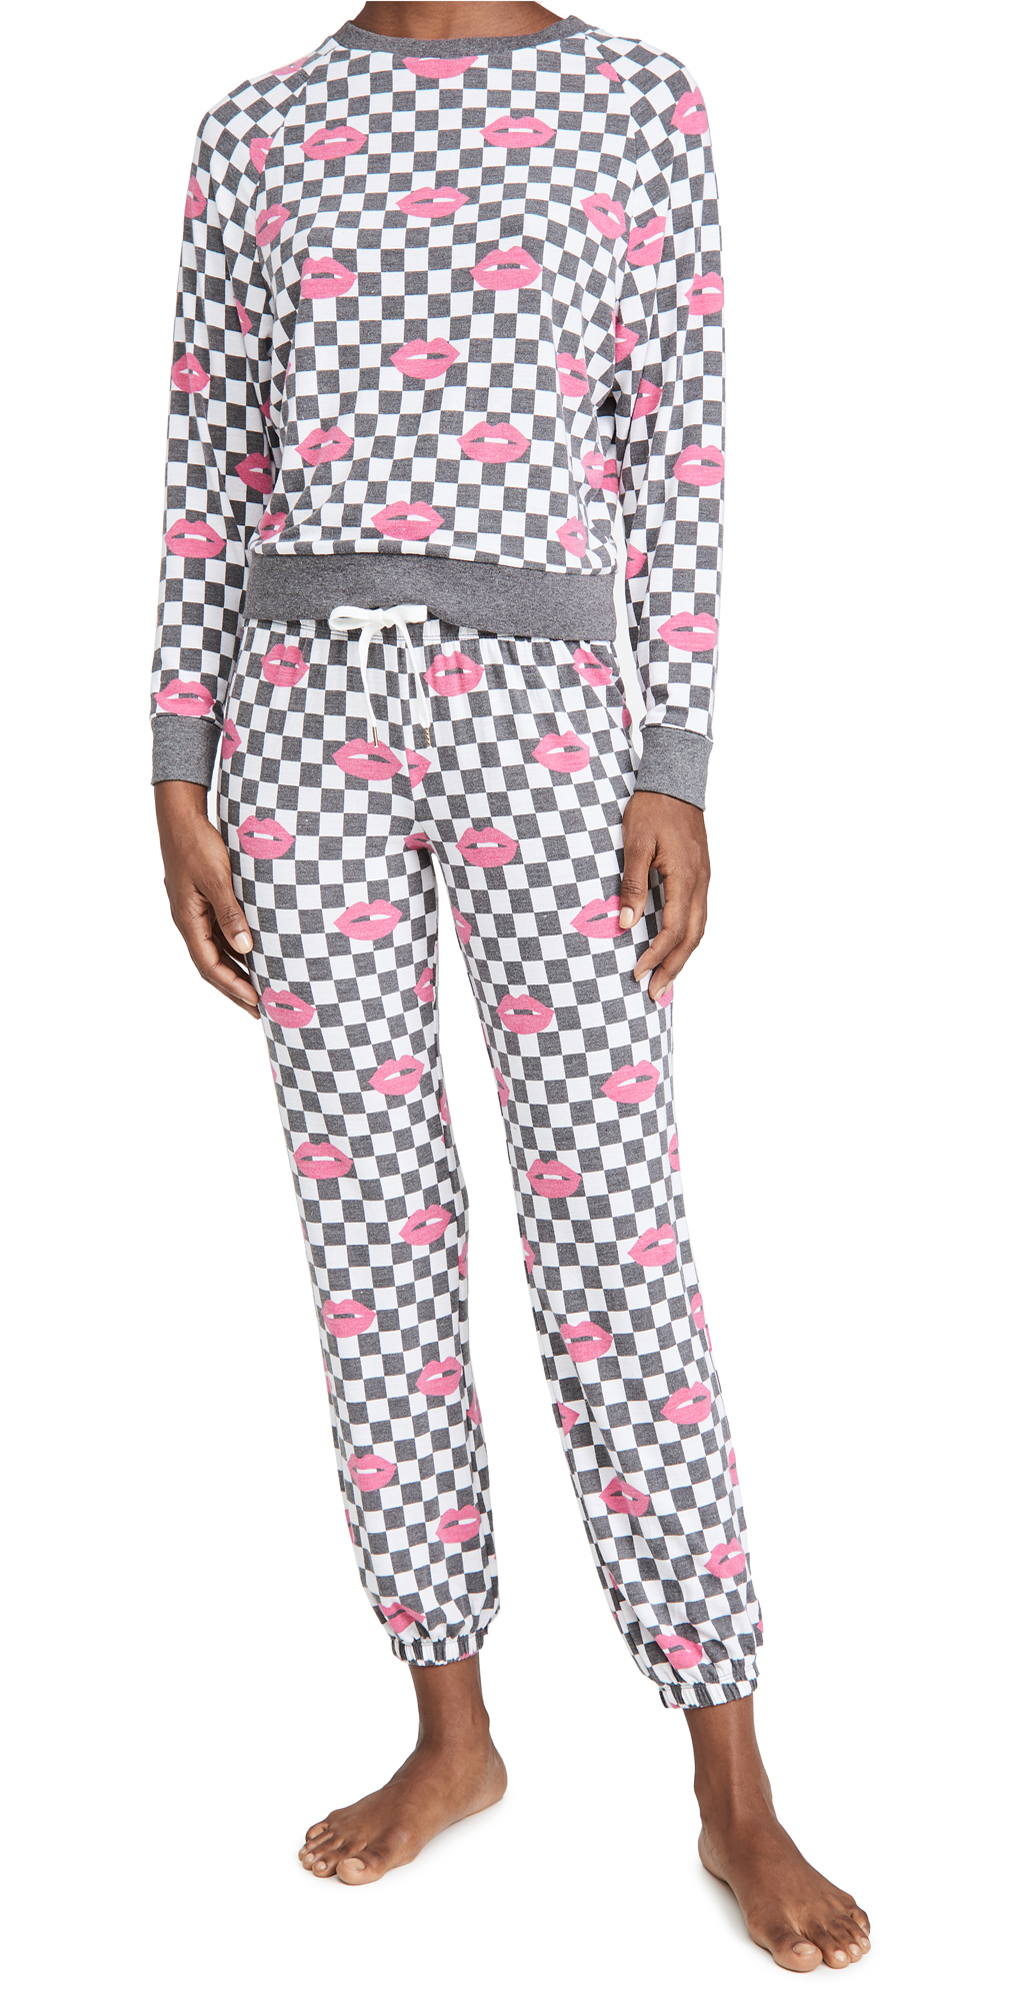 Honeydew Intimates Black Check Lounge Set